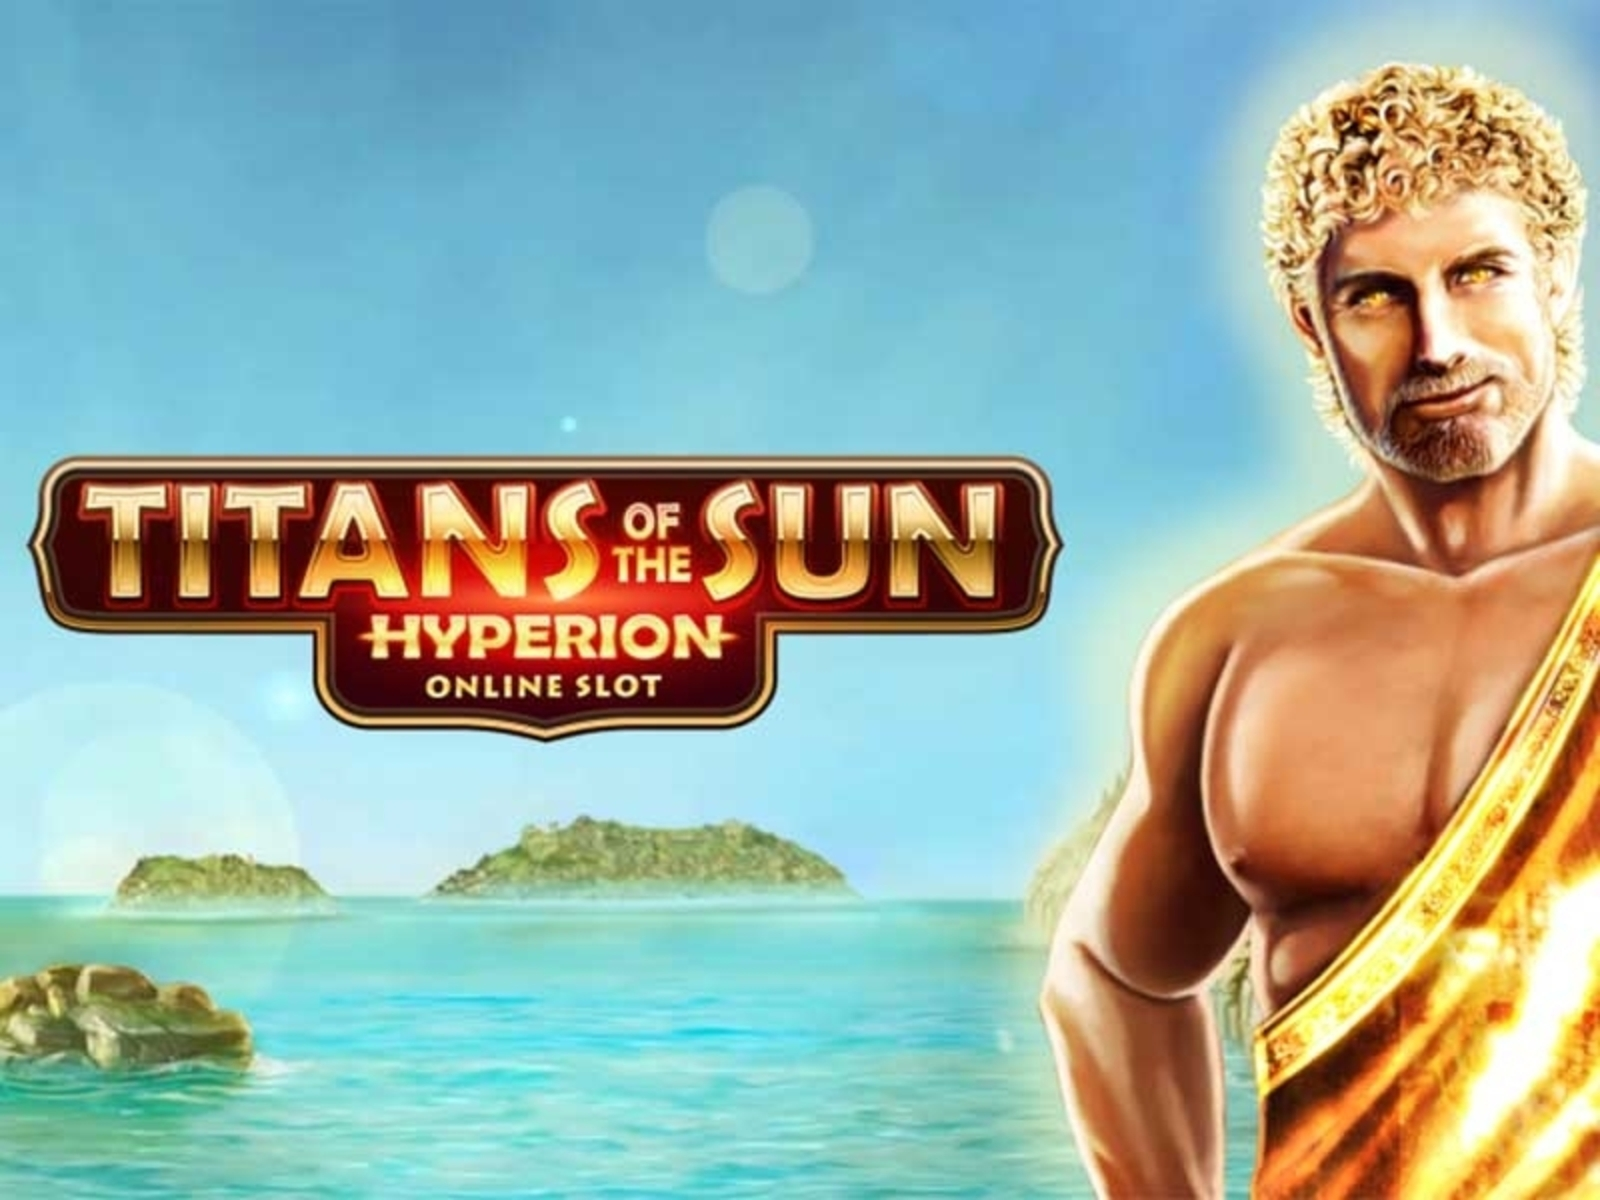 Titans of the Sun Hyperion Online Slot Demo Game by Microgaming